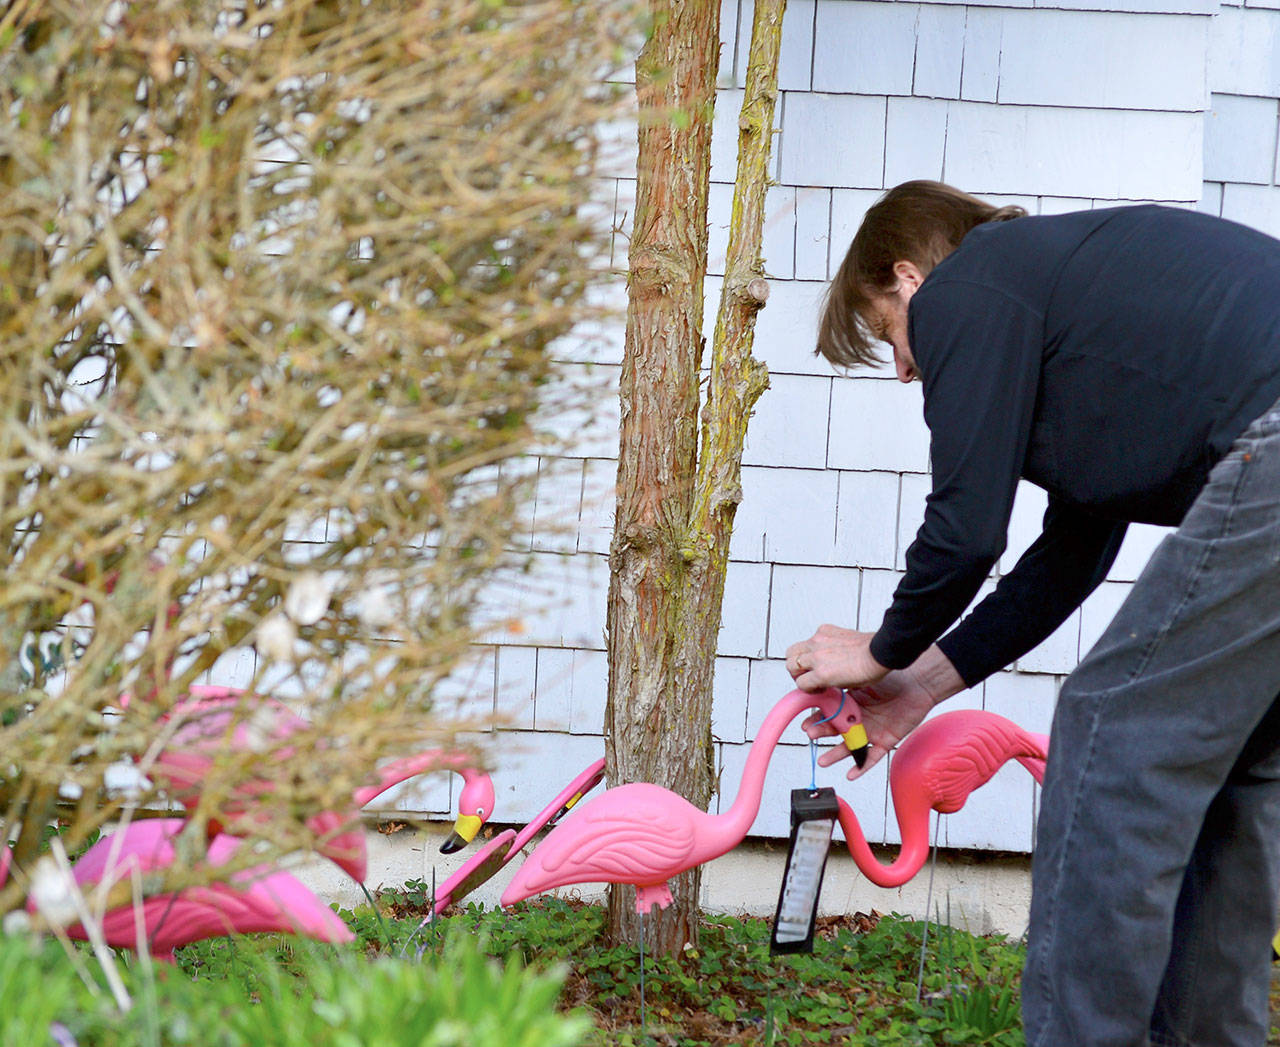 Bruce Cowan was flocked for the first time Tuesday night by the Port Townsend High School seniors, who are using flamingoes to fundraise for their Grad Night party. Wednesday morning, after discovering the birds, he slipped a donation into the pouch provided. (Diane Urbani de la Paz/Peninsula Daily News)